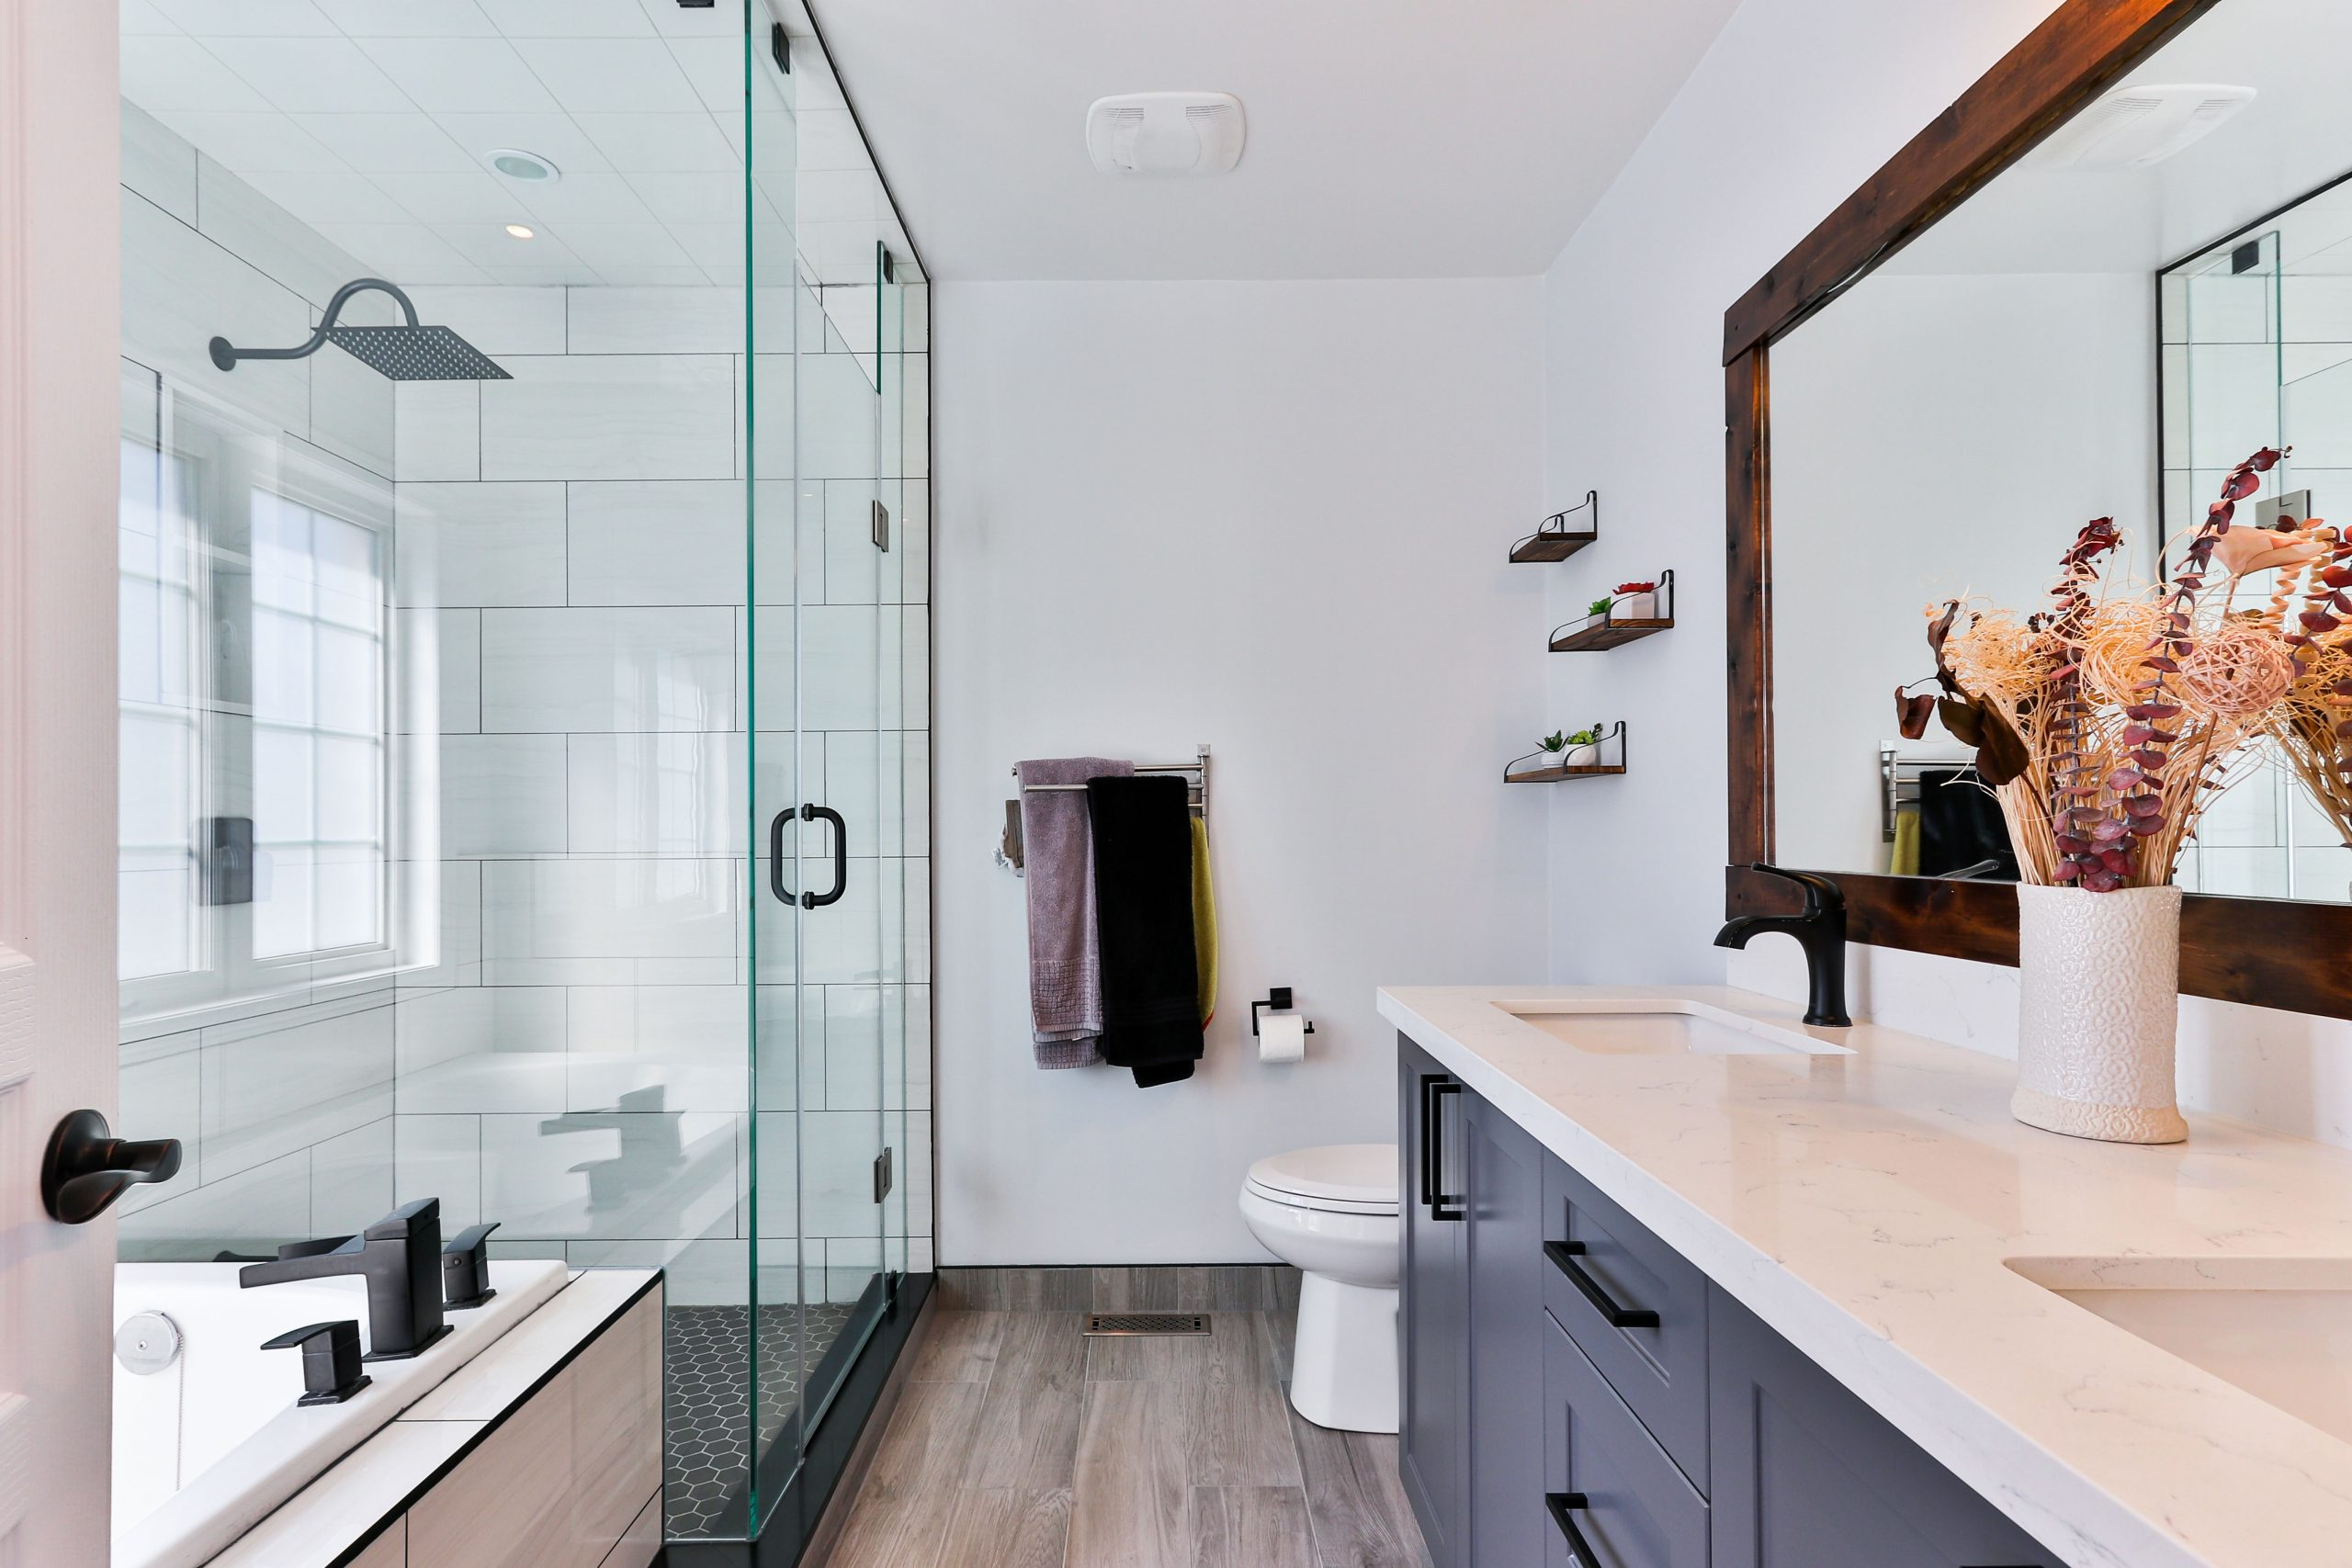 9 Ways to Fix a Shower Leakage